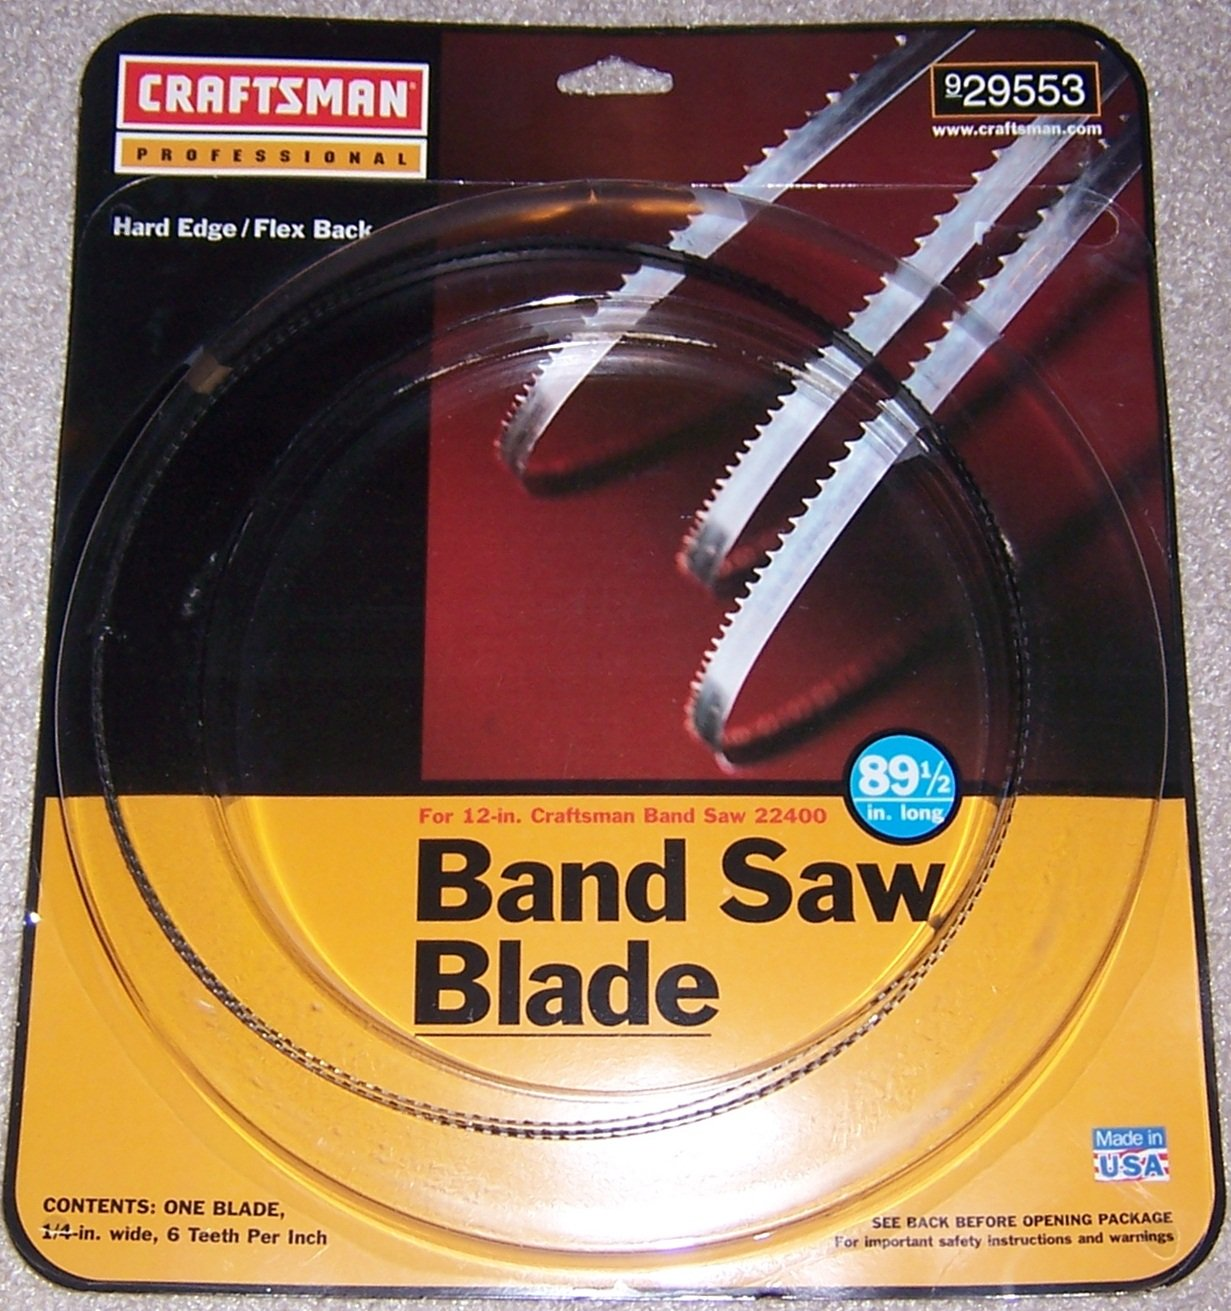 Band saw blade 14 6 teeth per inch 89 12 long for 12 band saw blade 14 6 teeth per inch 89 12 long for 12 craftsman band saw 22400 amazon greentooth Image collections